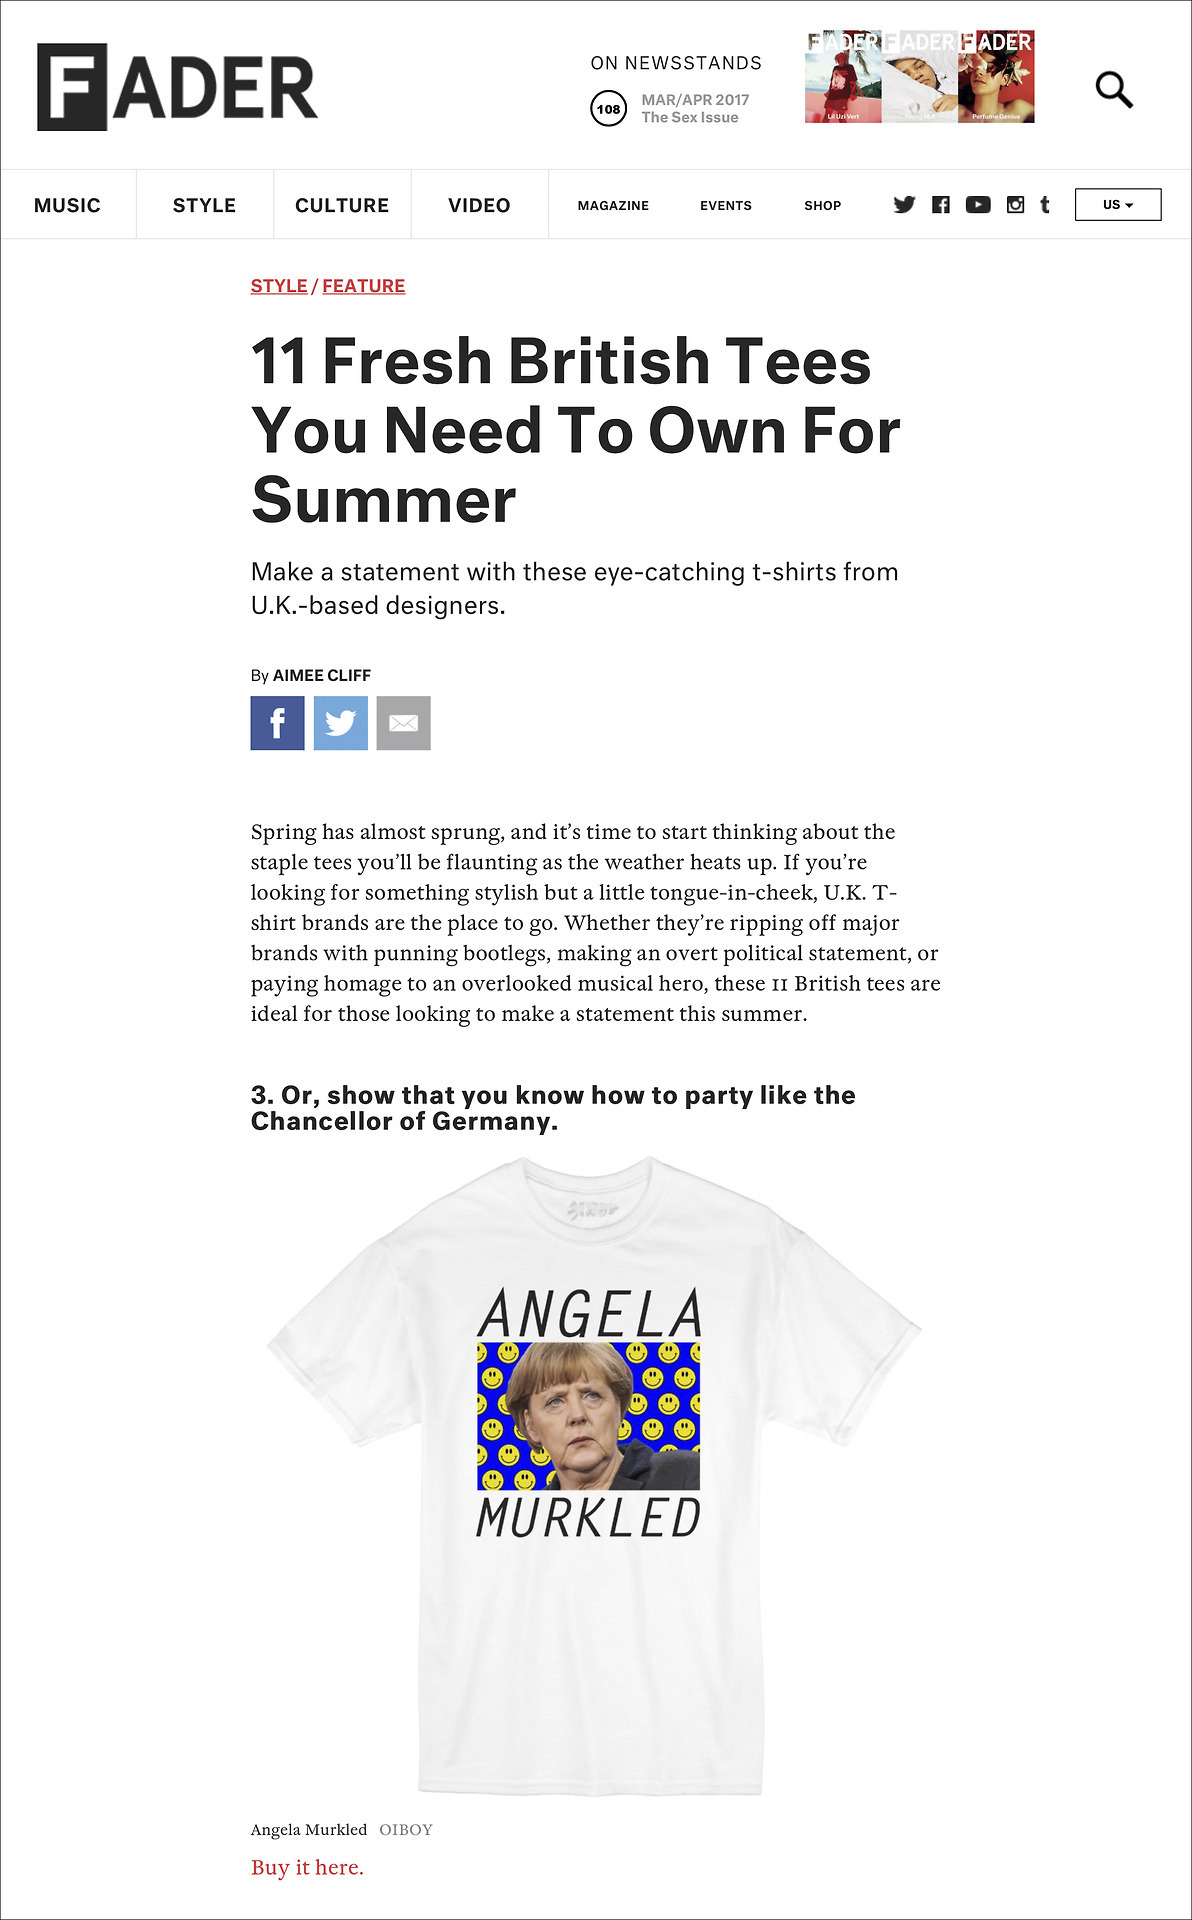 OUR OIBOY ANGELA MURKLED T-SHIRT WAS FEATURED ON THE FADER MAGAZINE'S WEBSITE IN THE ARTICLE '11 FRESH BRITISH TEES YOU NEED TO OWN FOR SUMMER'. READ IT  HERE .